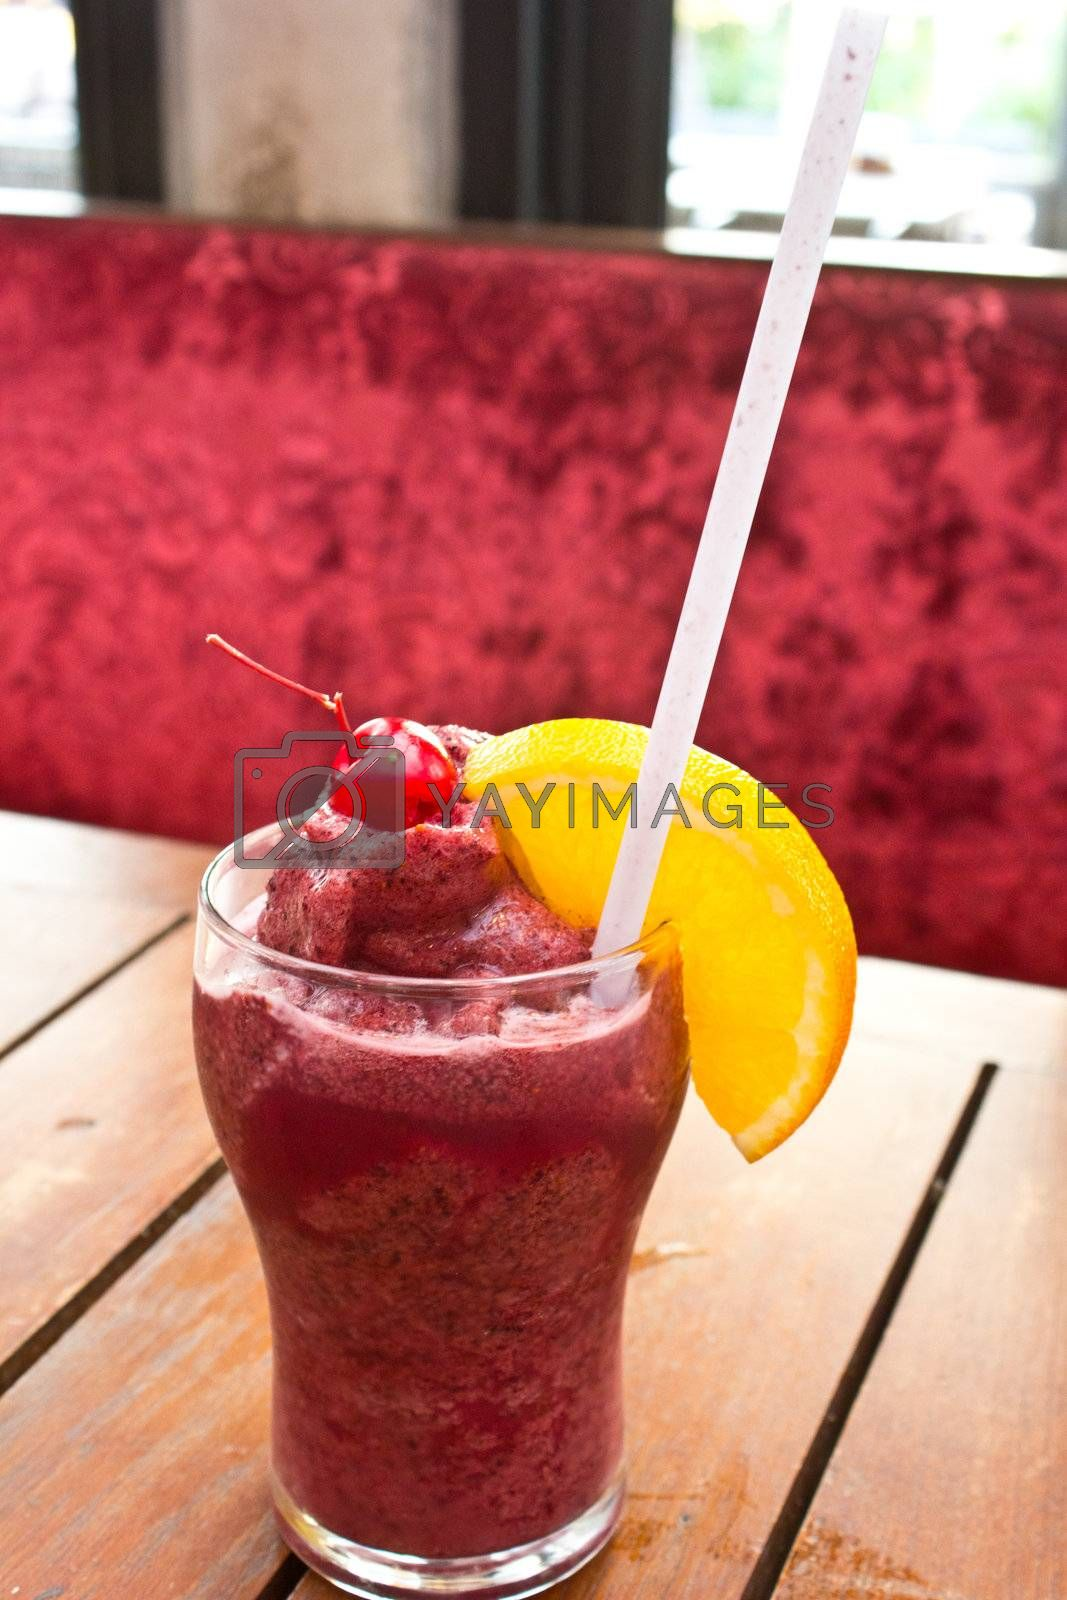 very delicious blue berry smoothies